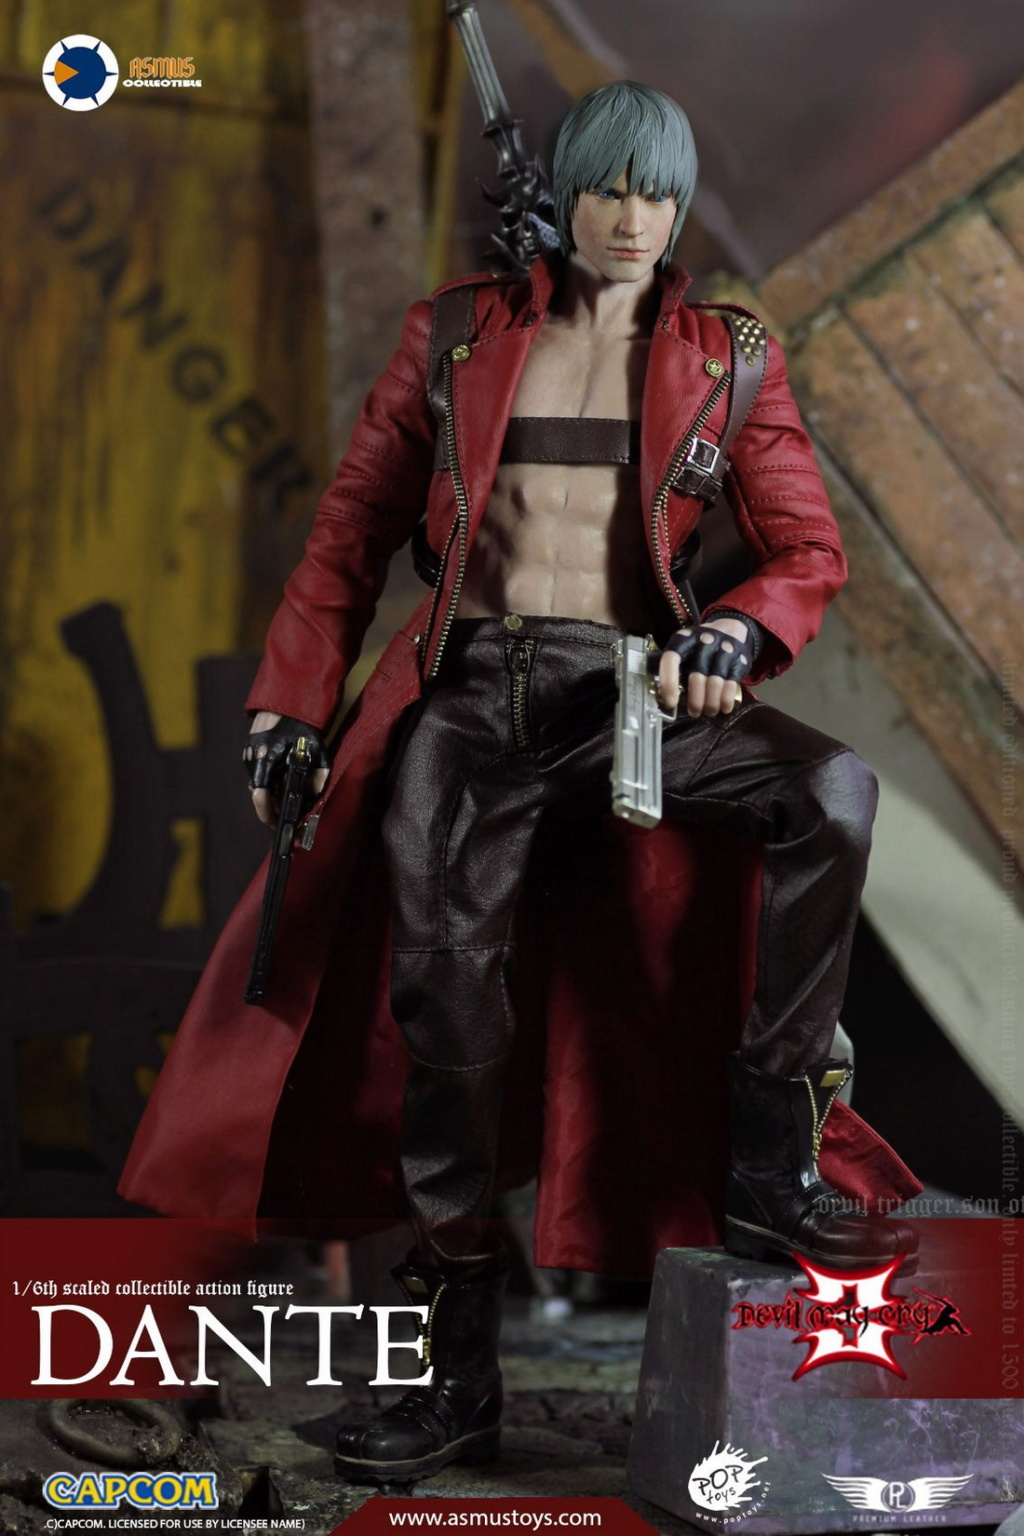 NEW PRODUCT: Asmus Toys: 1/6 Devil May Cry3/DMC3/Devil May Cry 3 - The DANTE/Dante (DMC301) 11070310